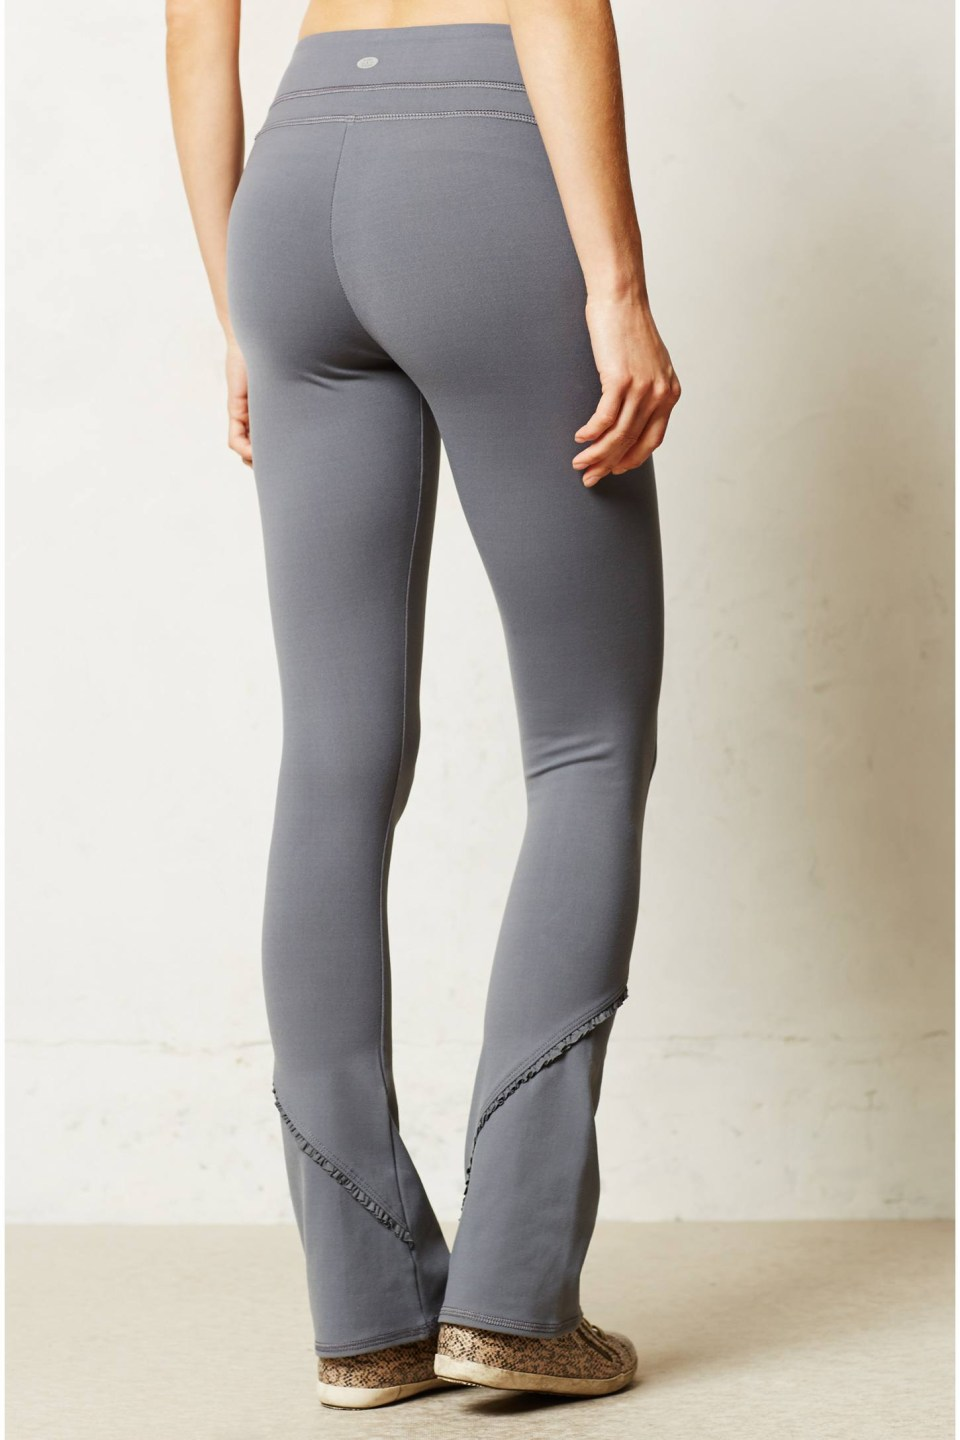 bootcut leggings